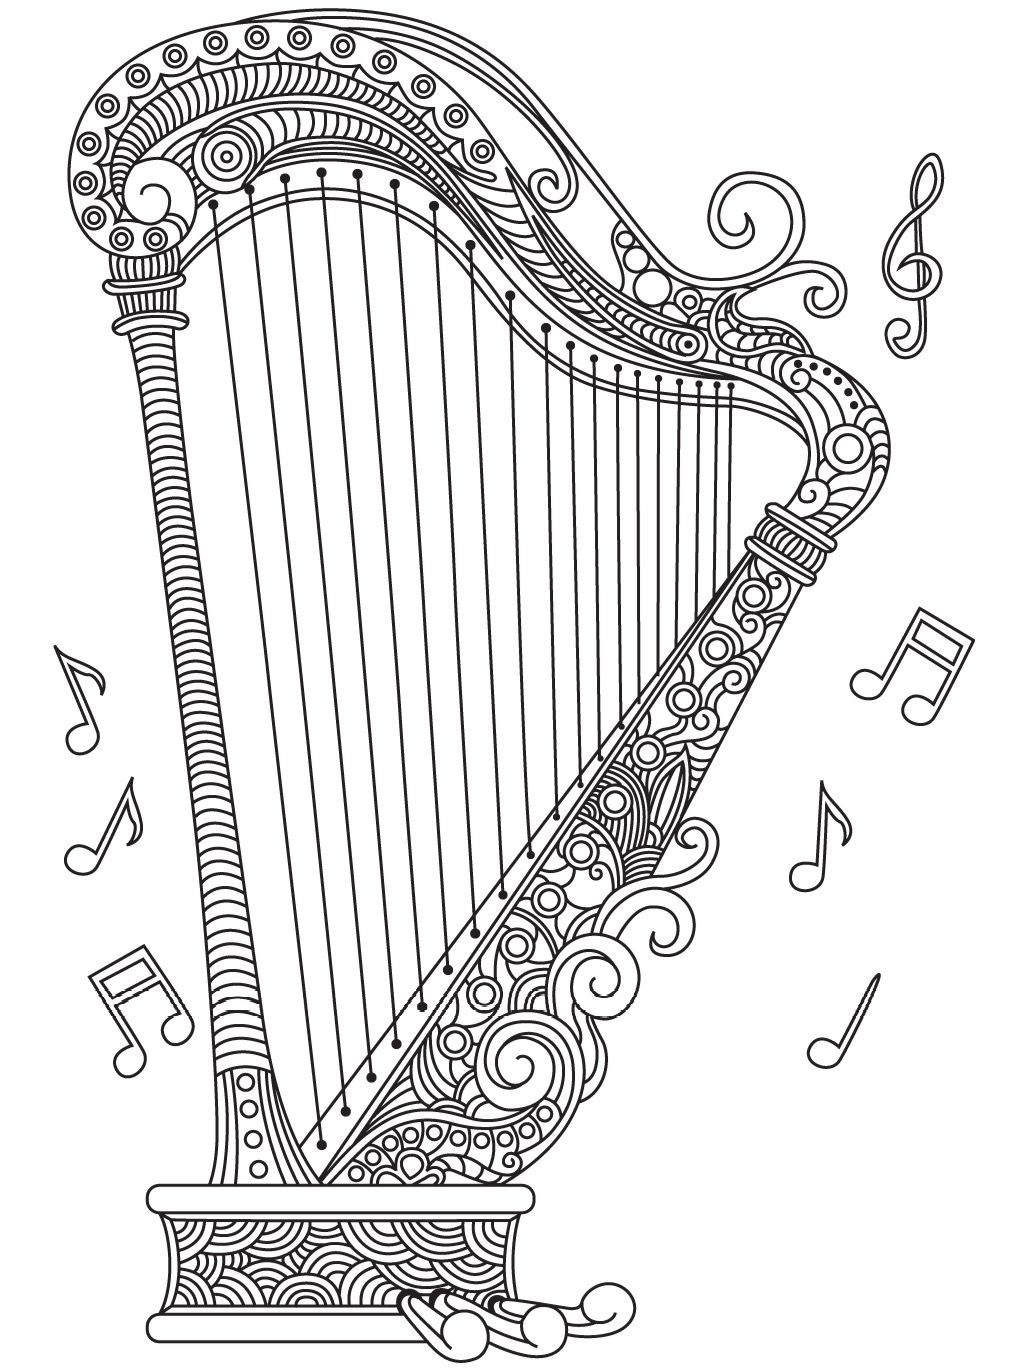 Harp Colorish Coloring Book For Adults Mandala Relax By Goodsofttech Heart Clip Art Music Notes Drawing Coloring Books